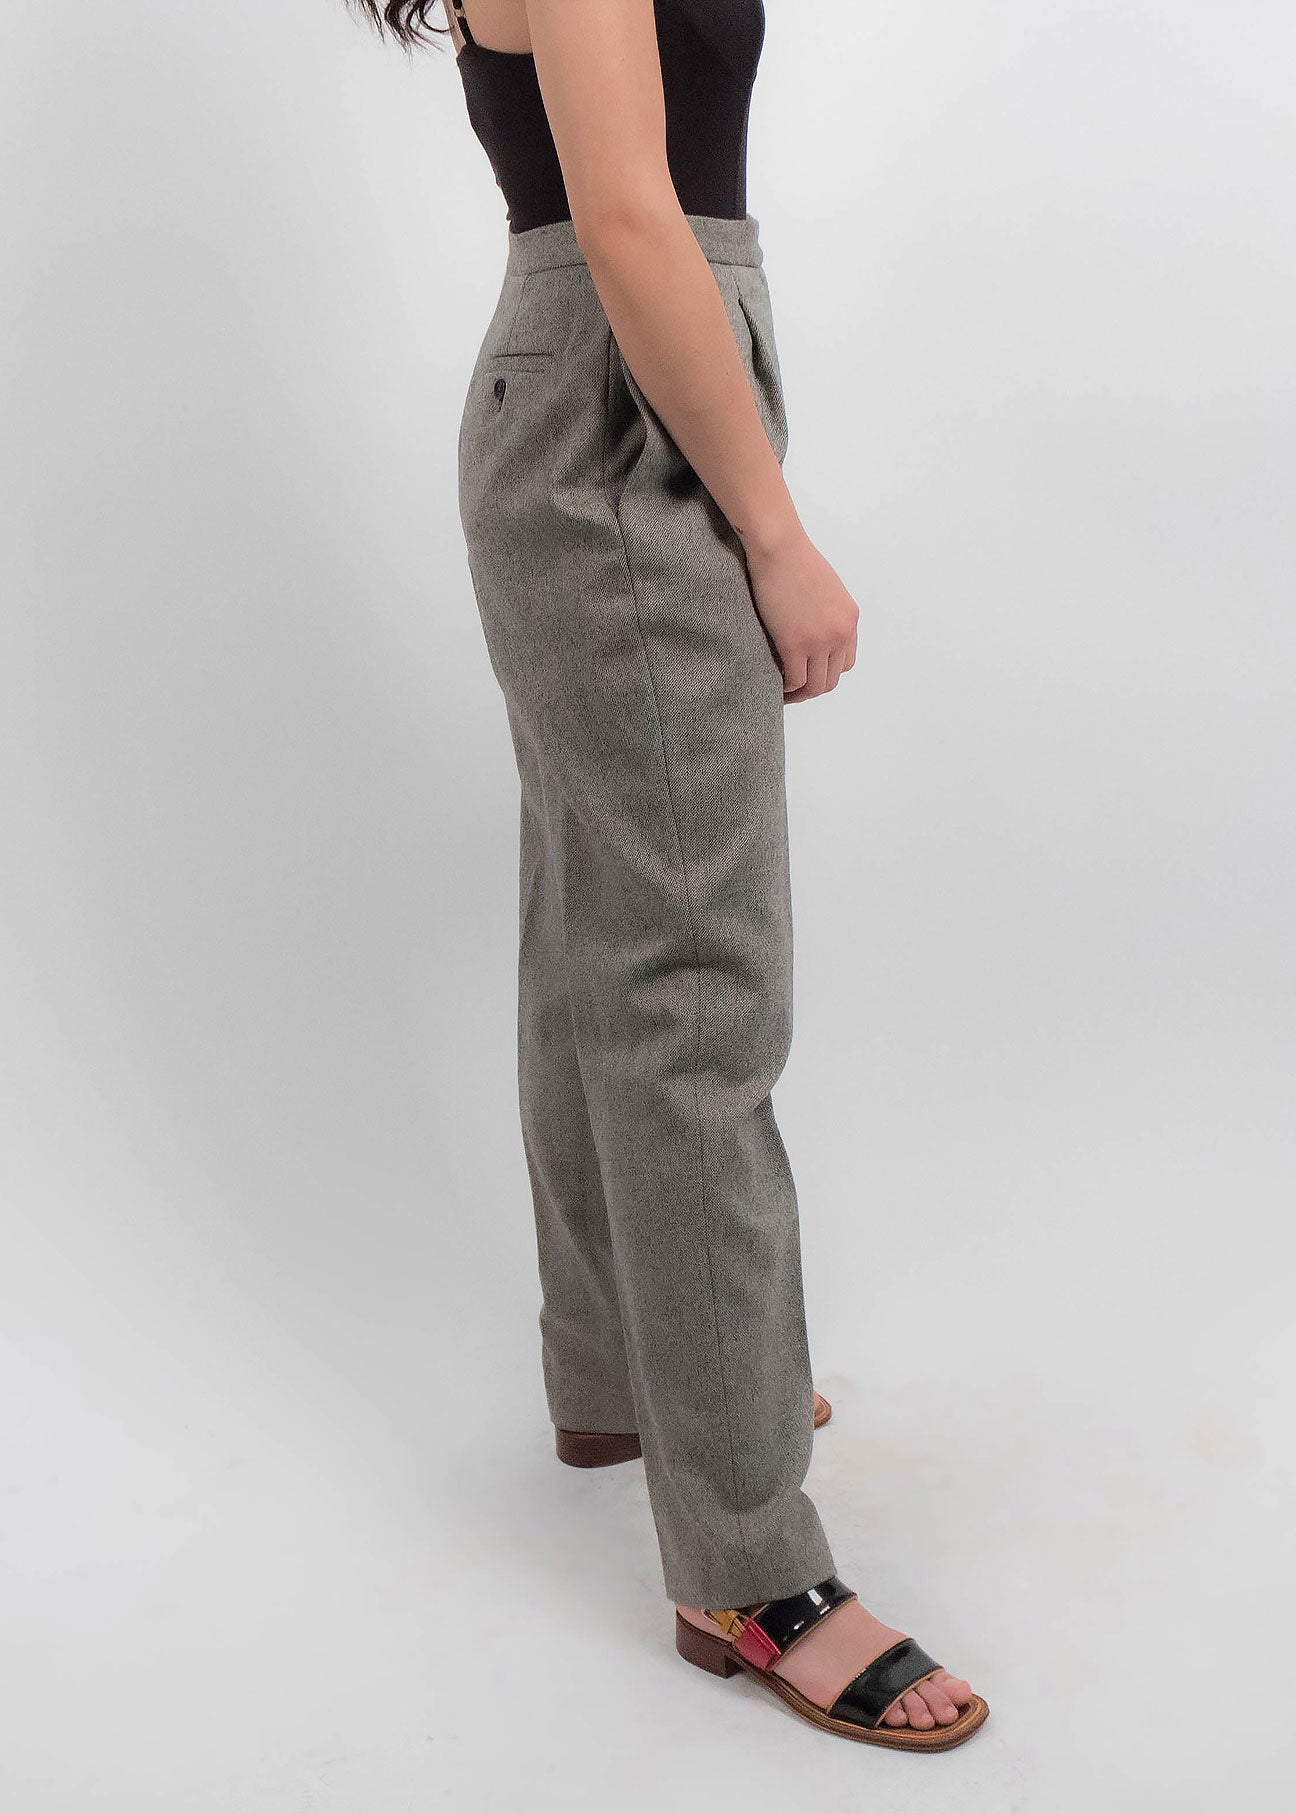 90s Ralph Lauren Wool Pants